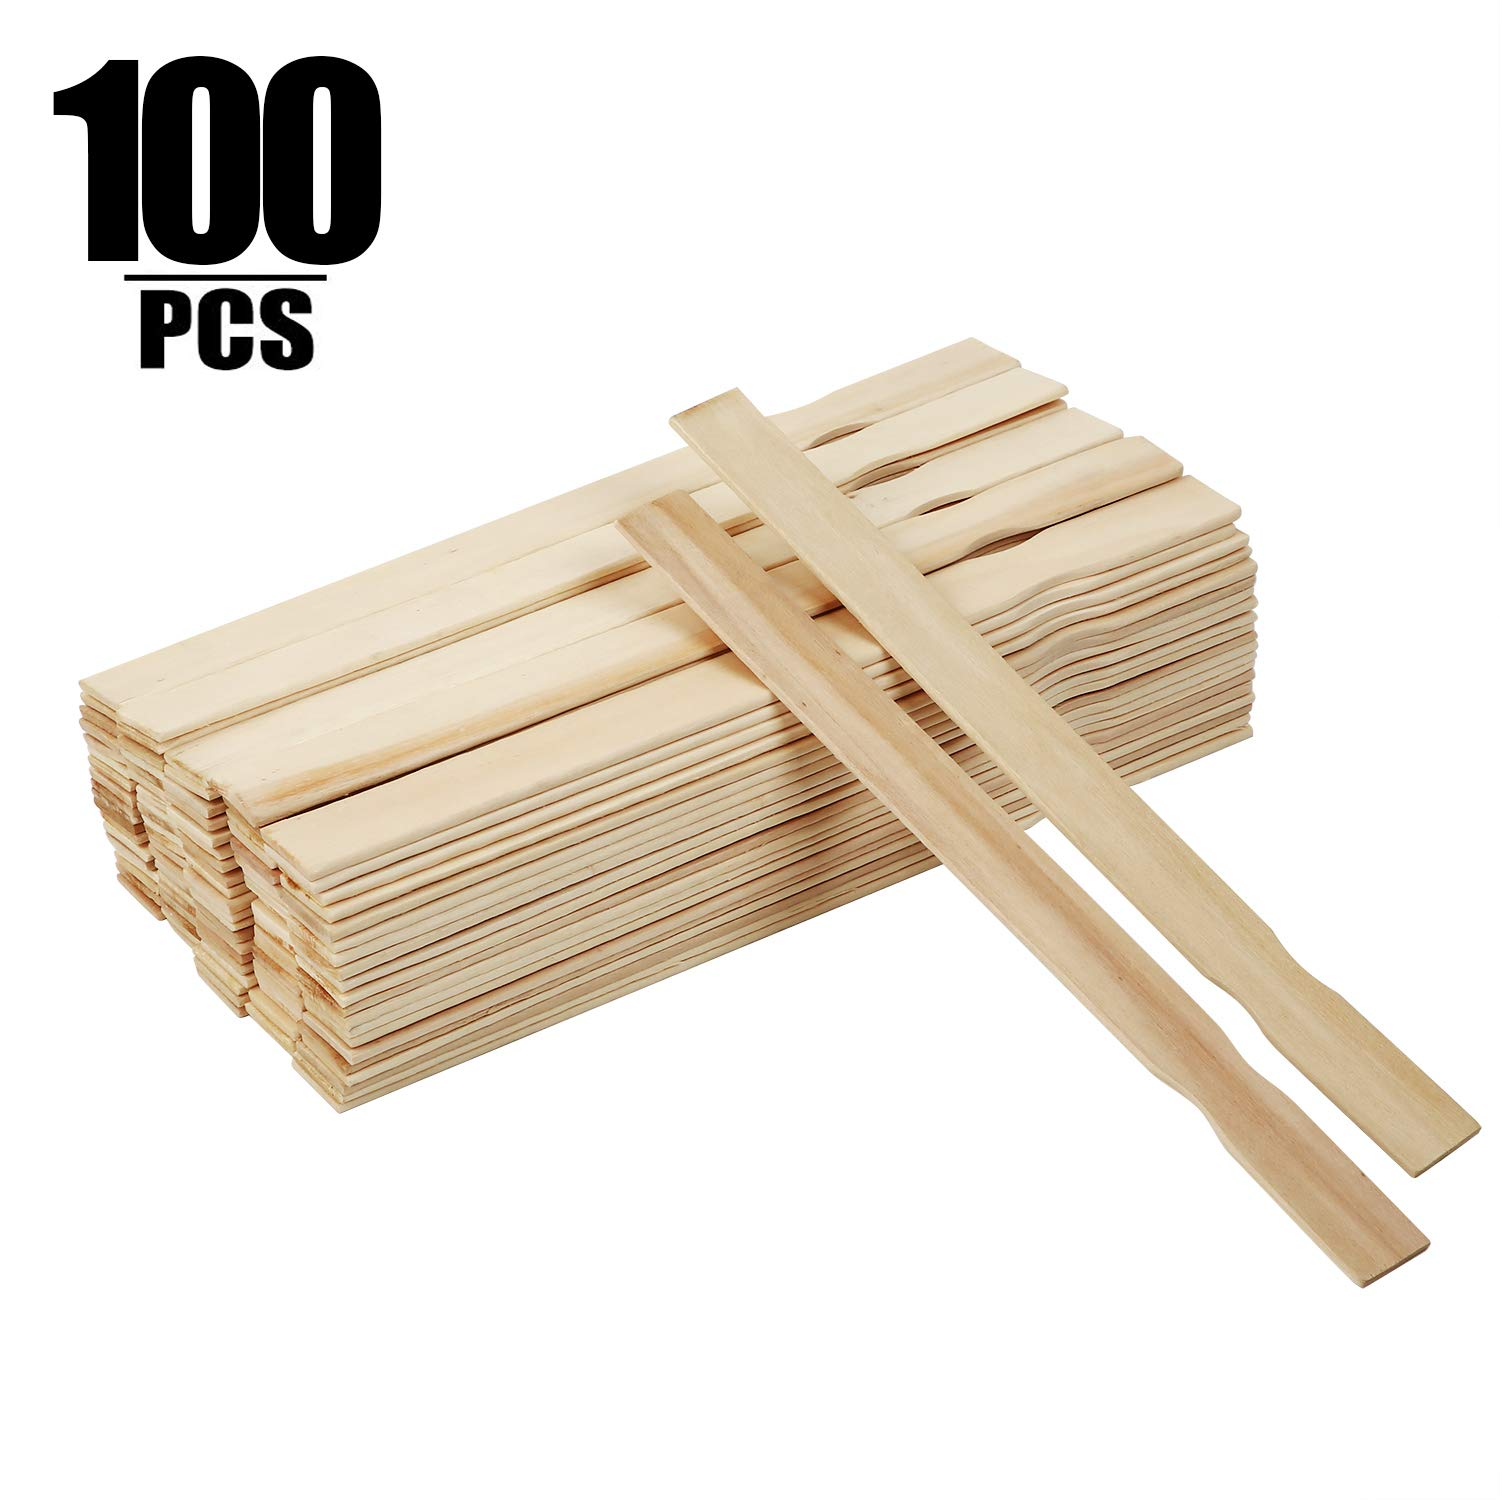 100 PCS 12 Inch Length Paint Sticks, KINJOEK Premium Wood Multi-Purpose Wood Crafts Sticks for Paint Mixing, Chemical Stirring, Wood Crafts, Kids Craft  by KINJOEK